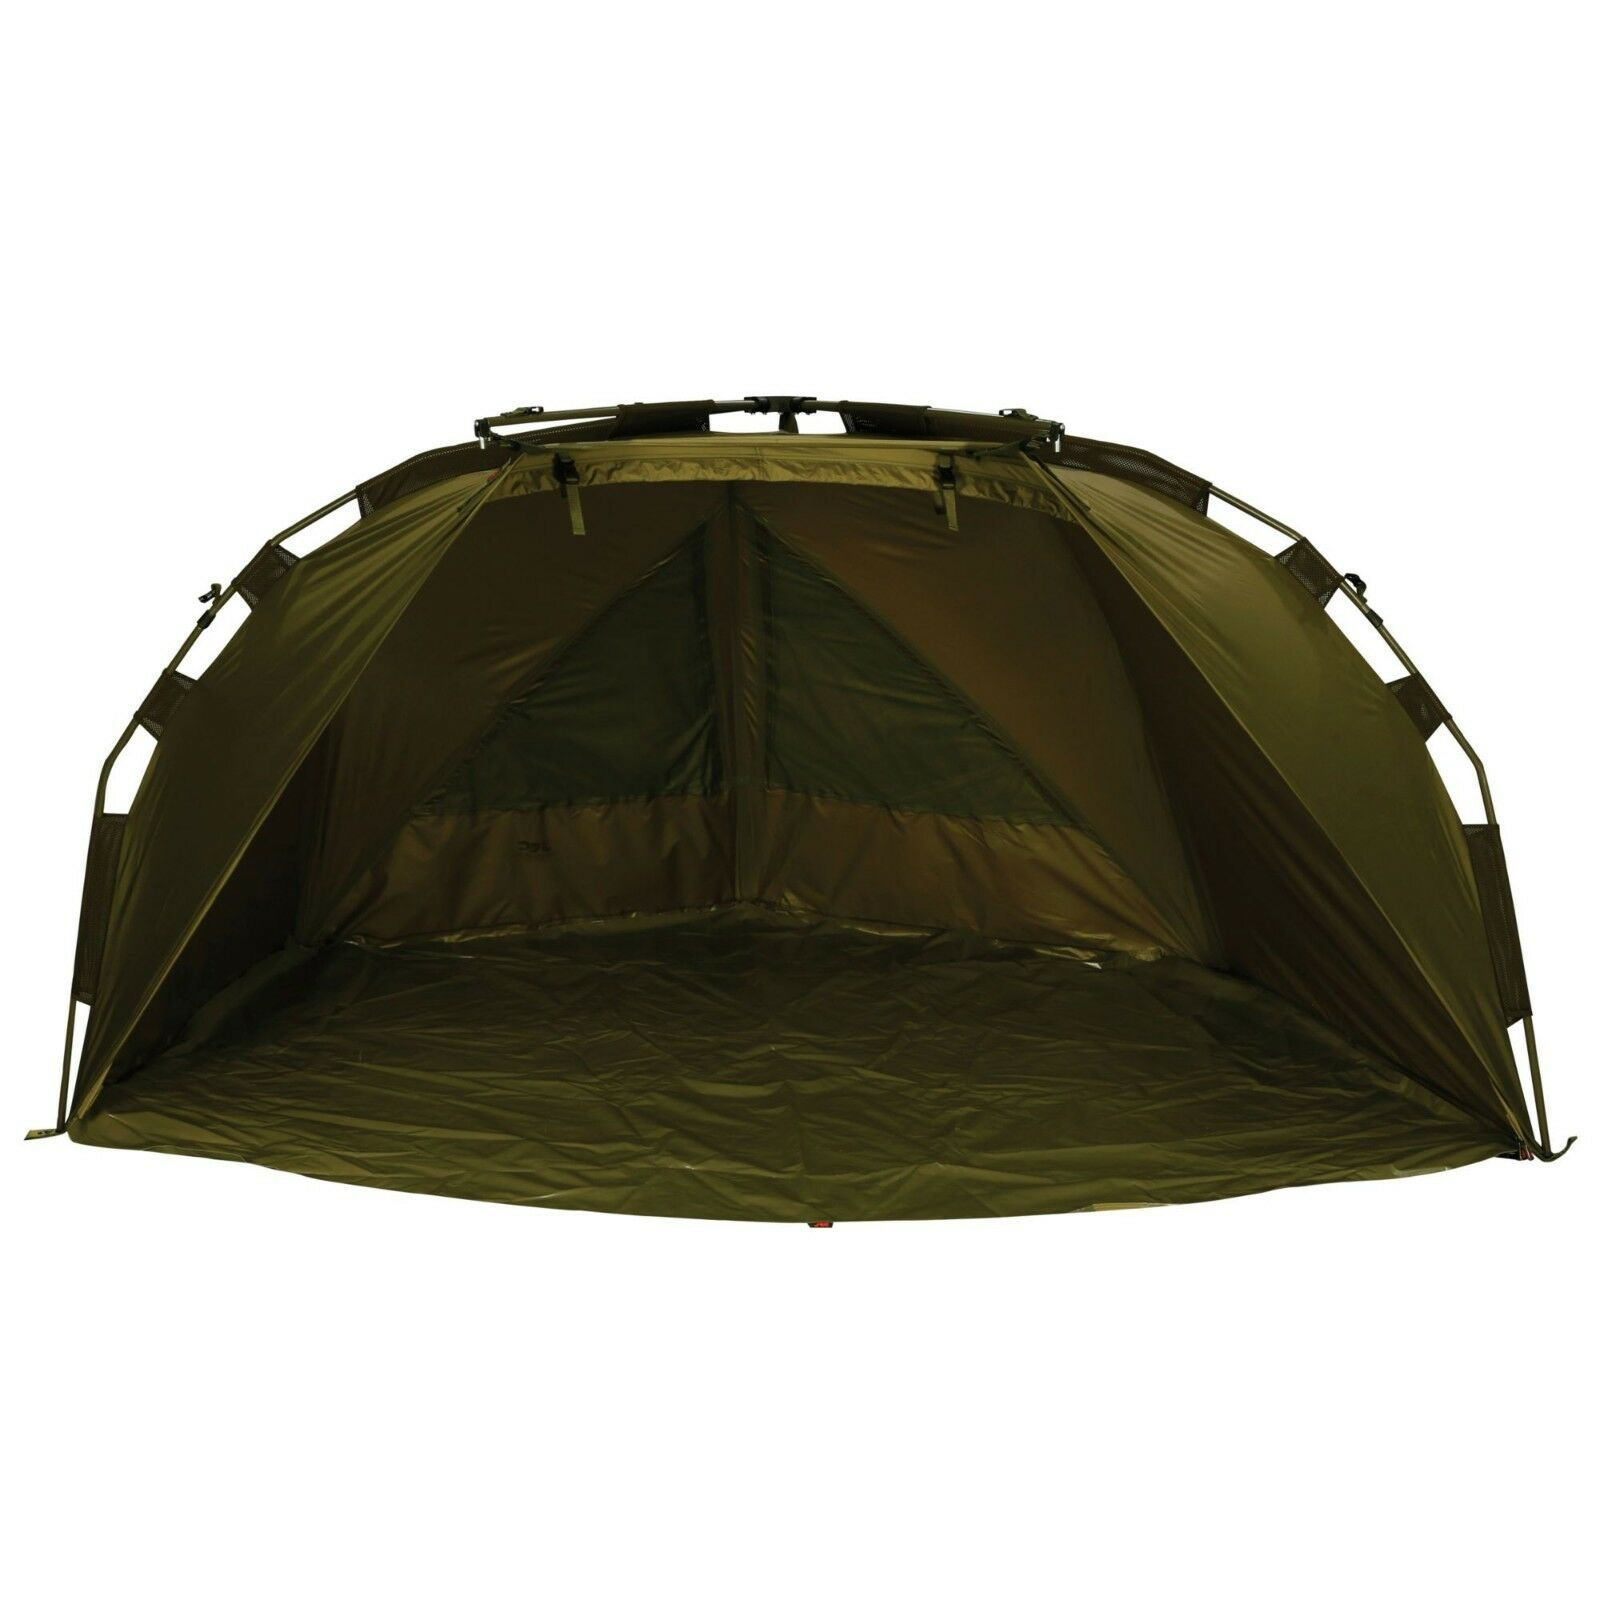 JRC Stealth Bloxx Compact 2G Bivvy NEW Carp Fishing Shelter - 1485819